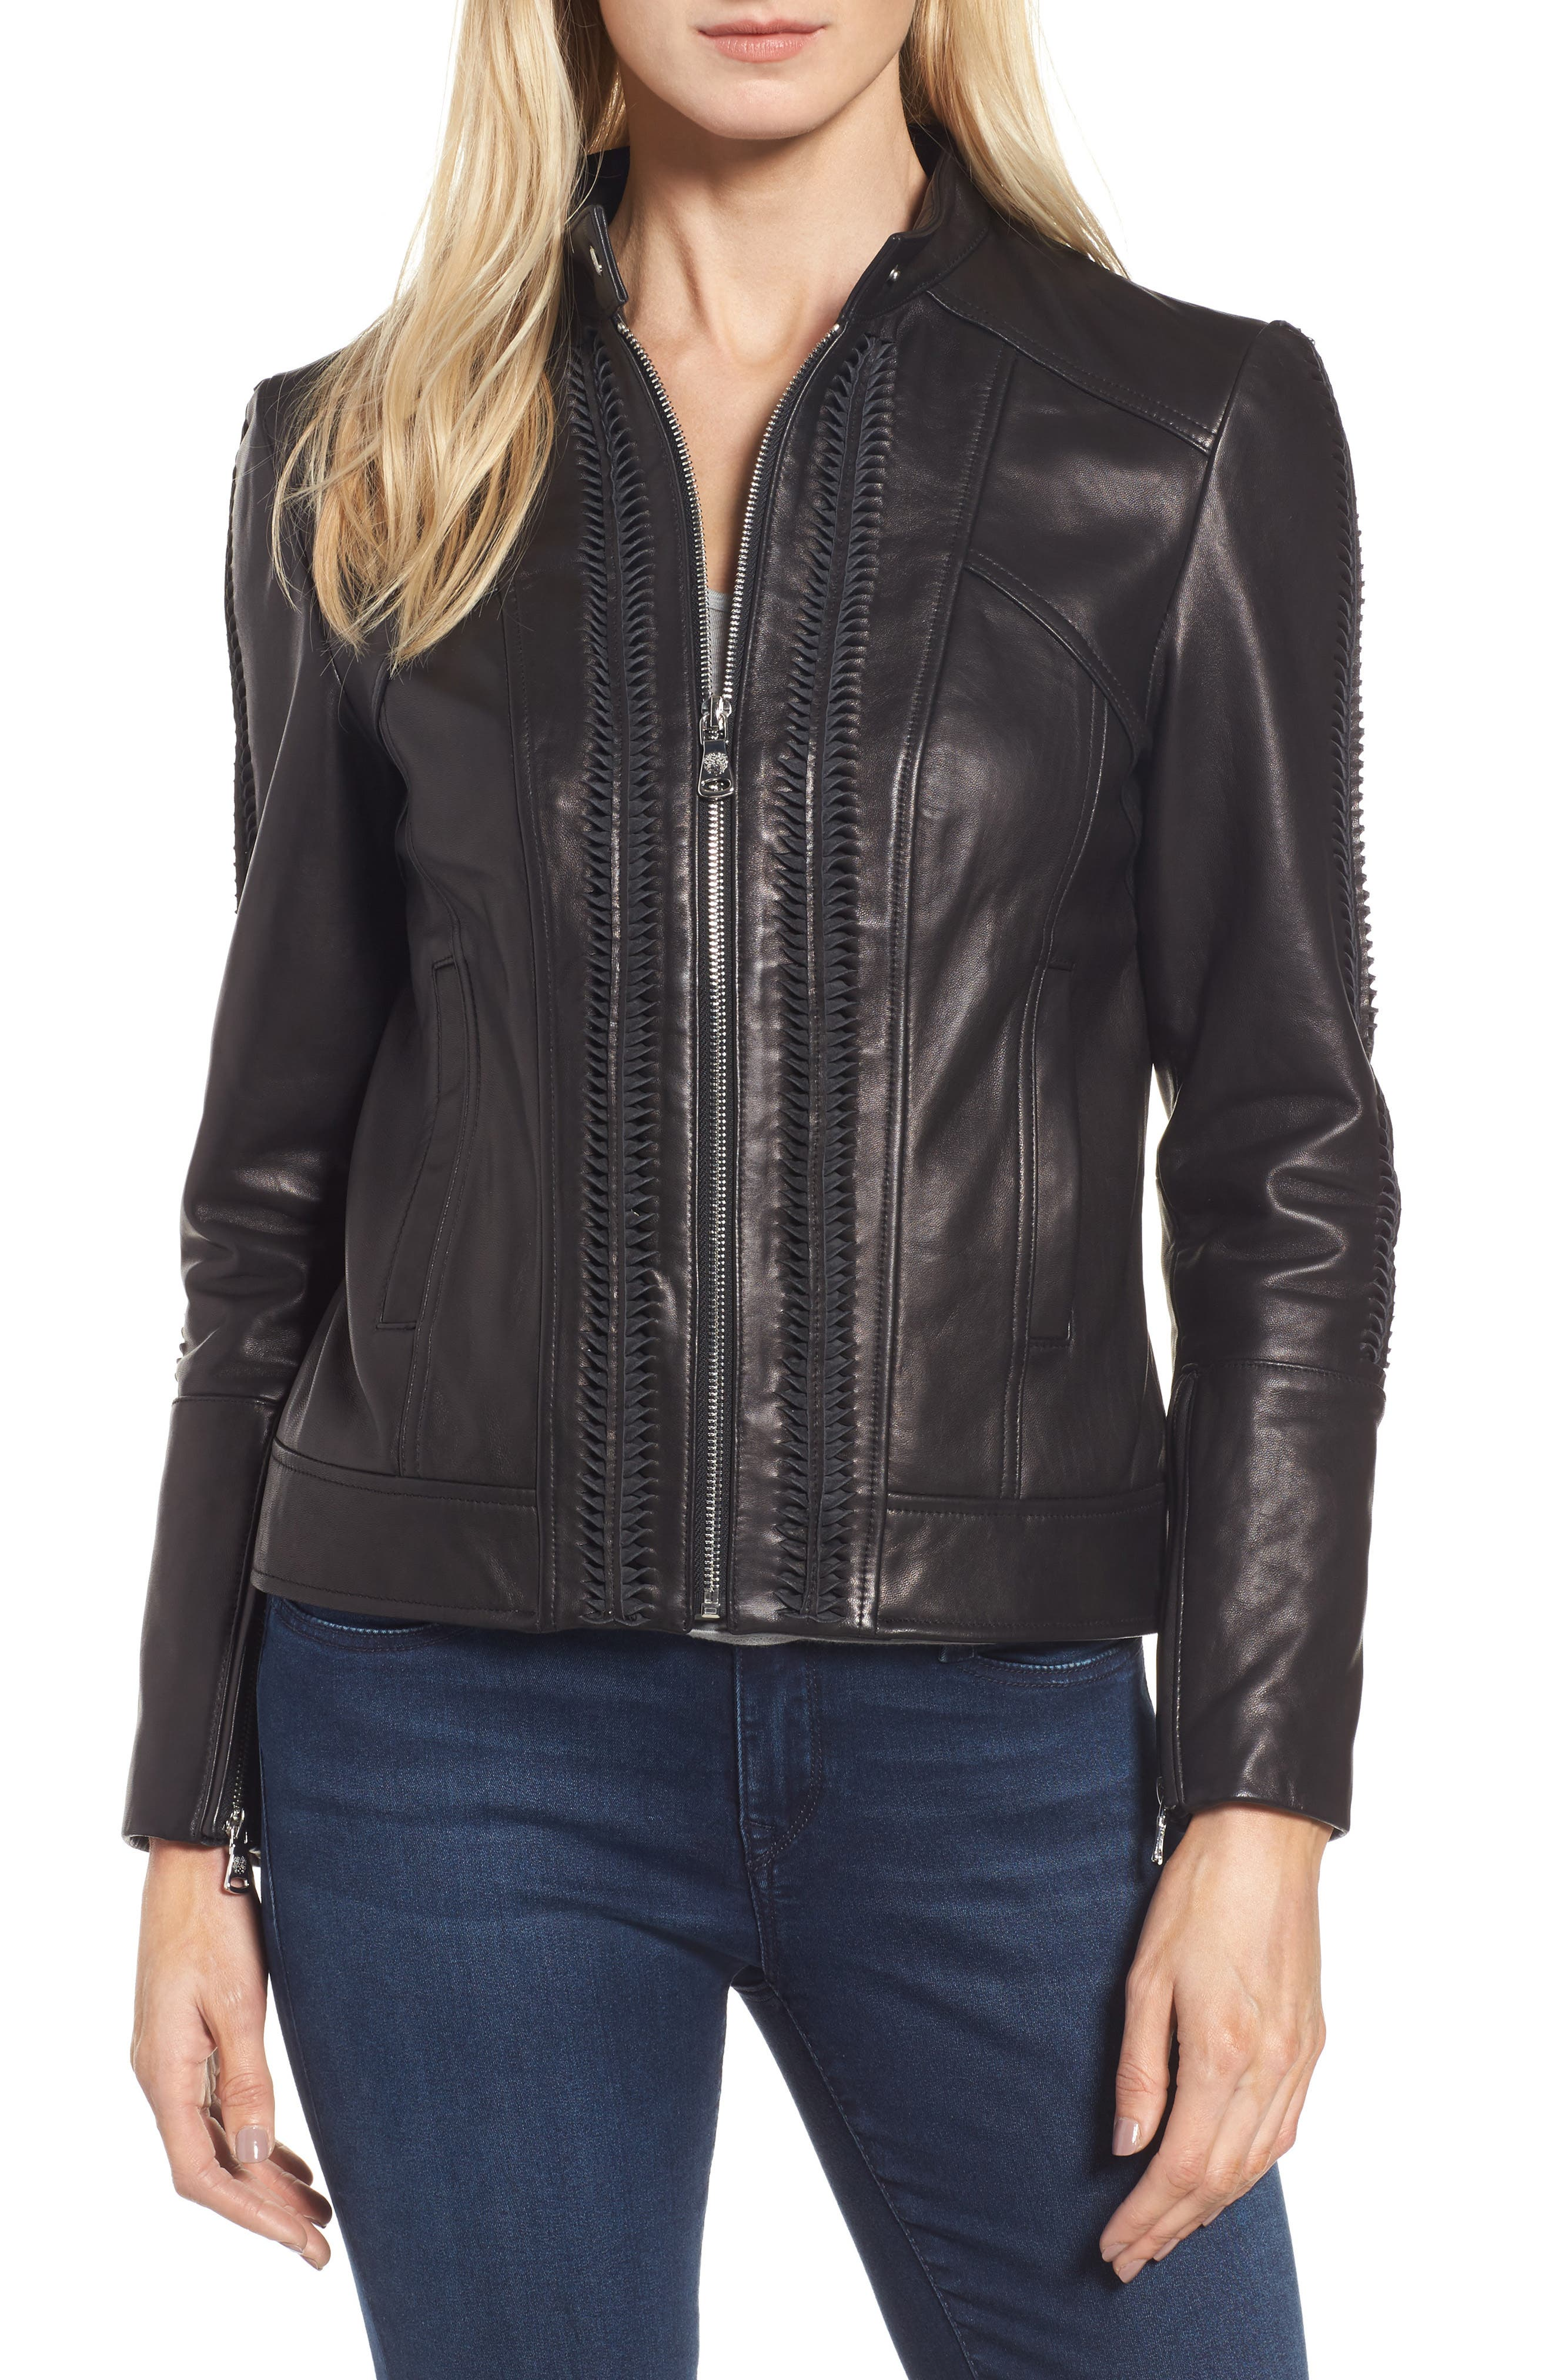 Vince Camuto Braid Detail Leather Jacket